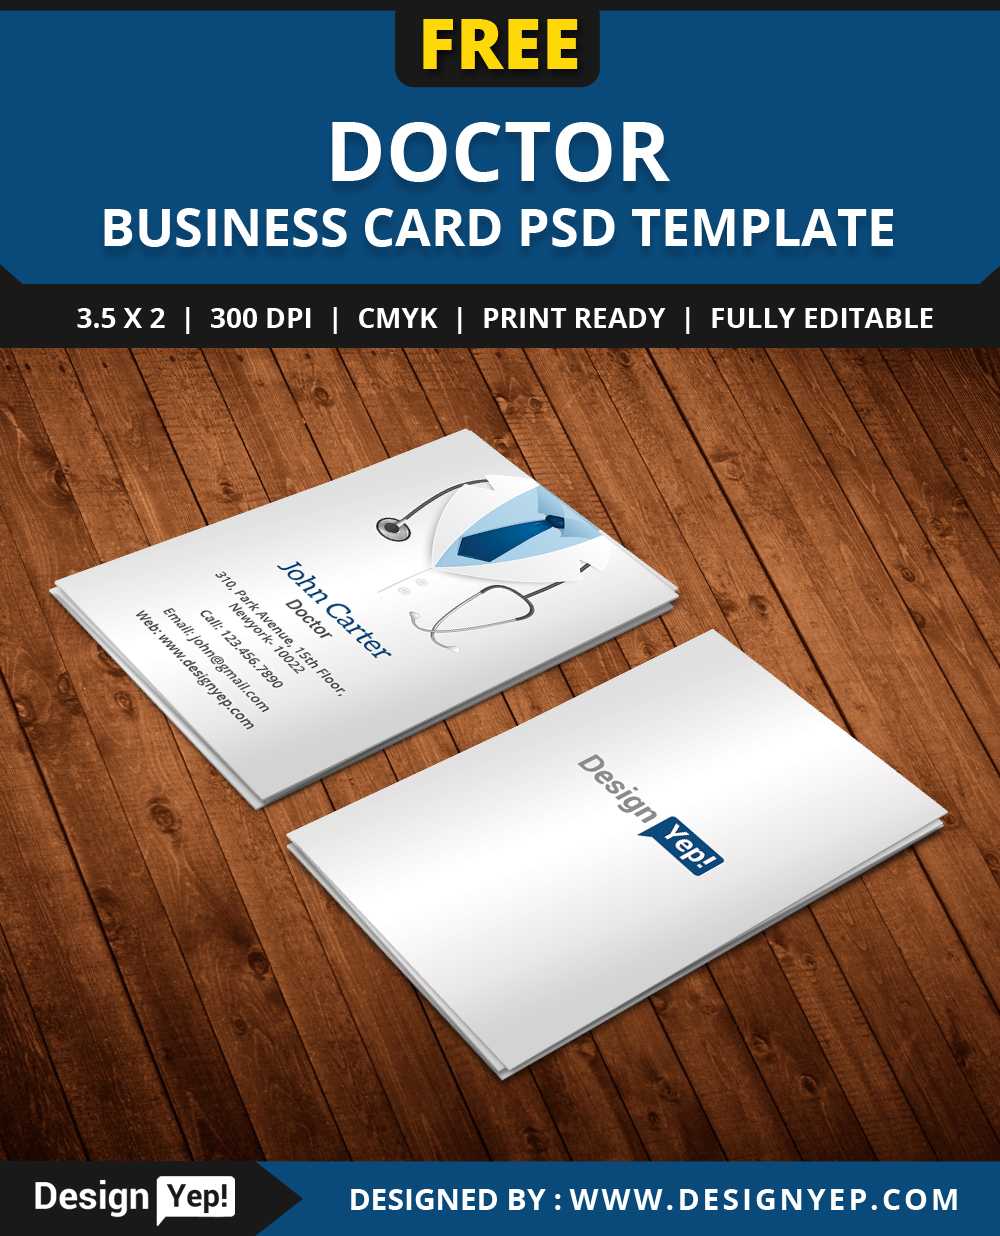 Free doctor business card template psd on behance fbccfo Image collections